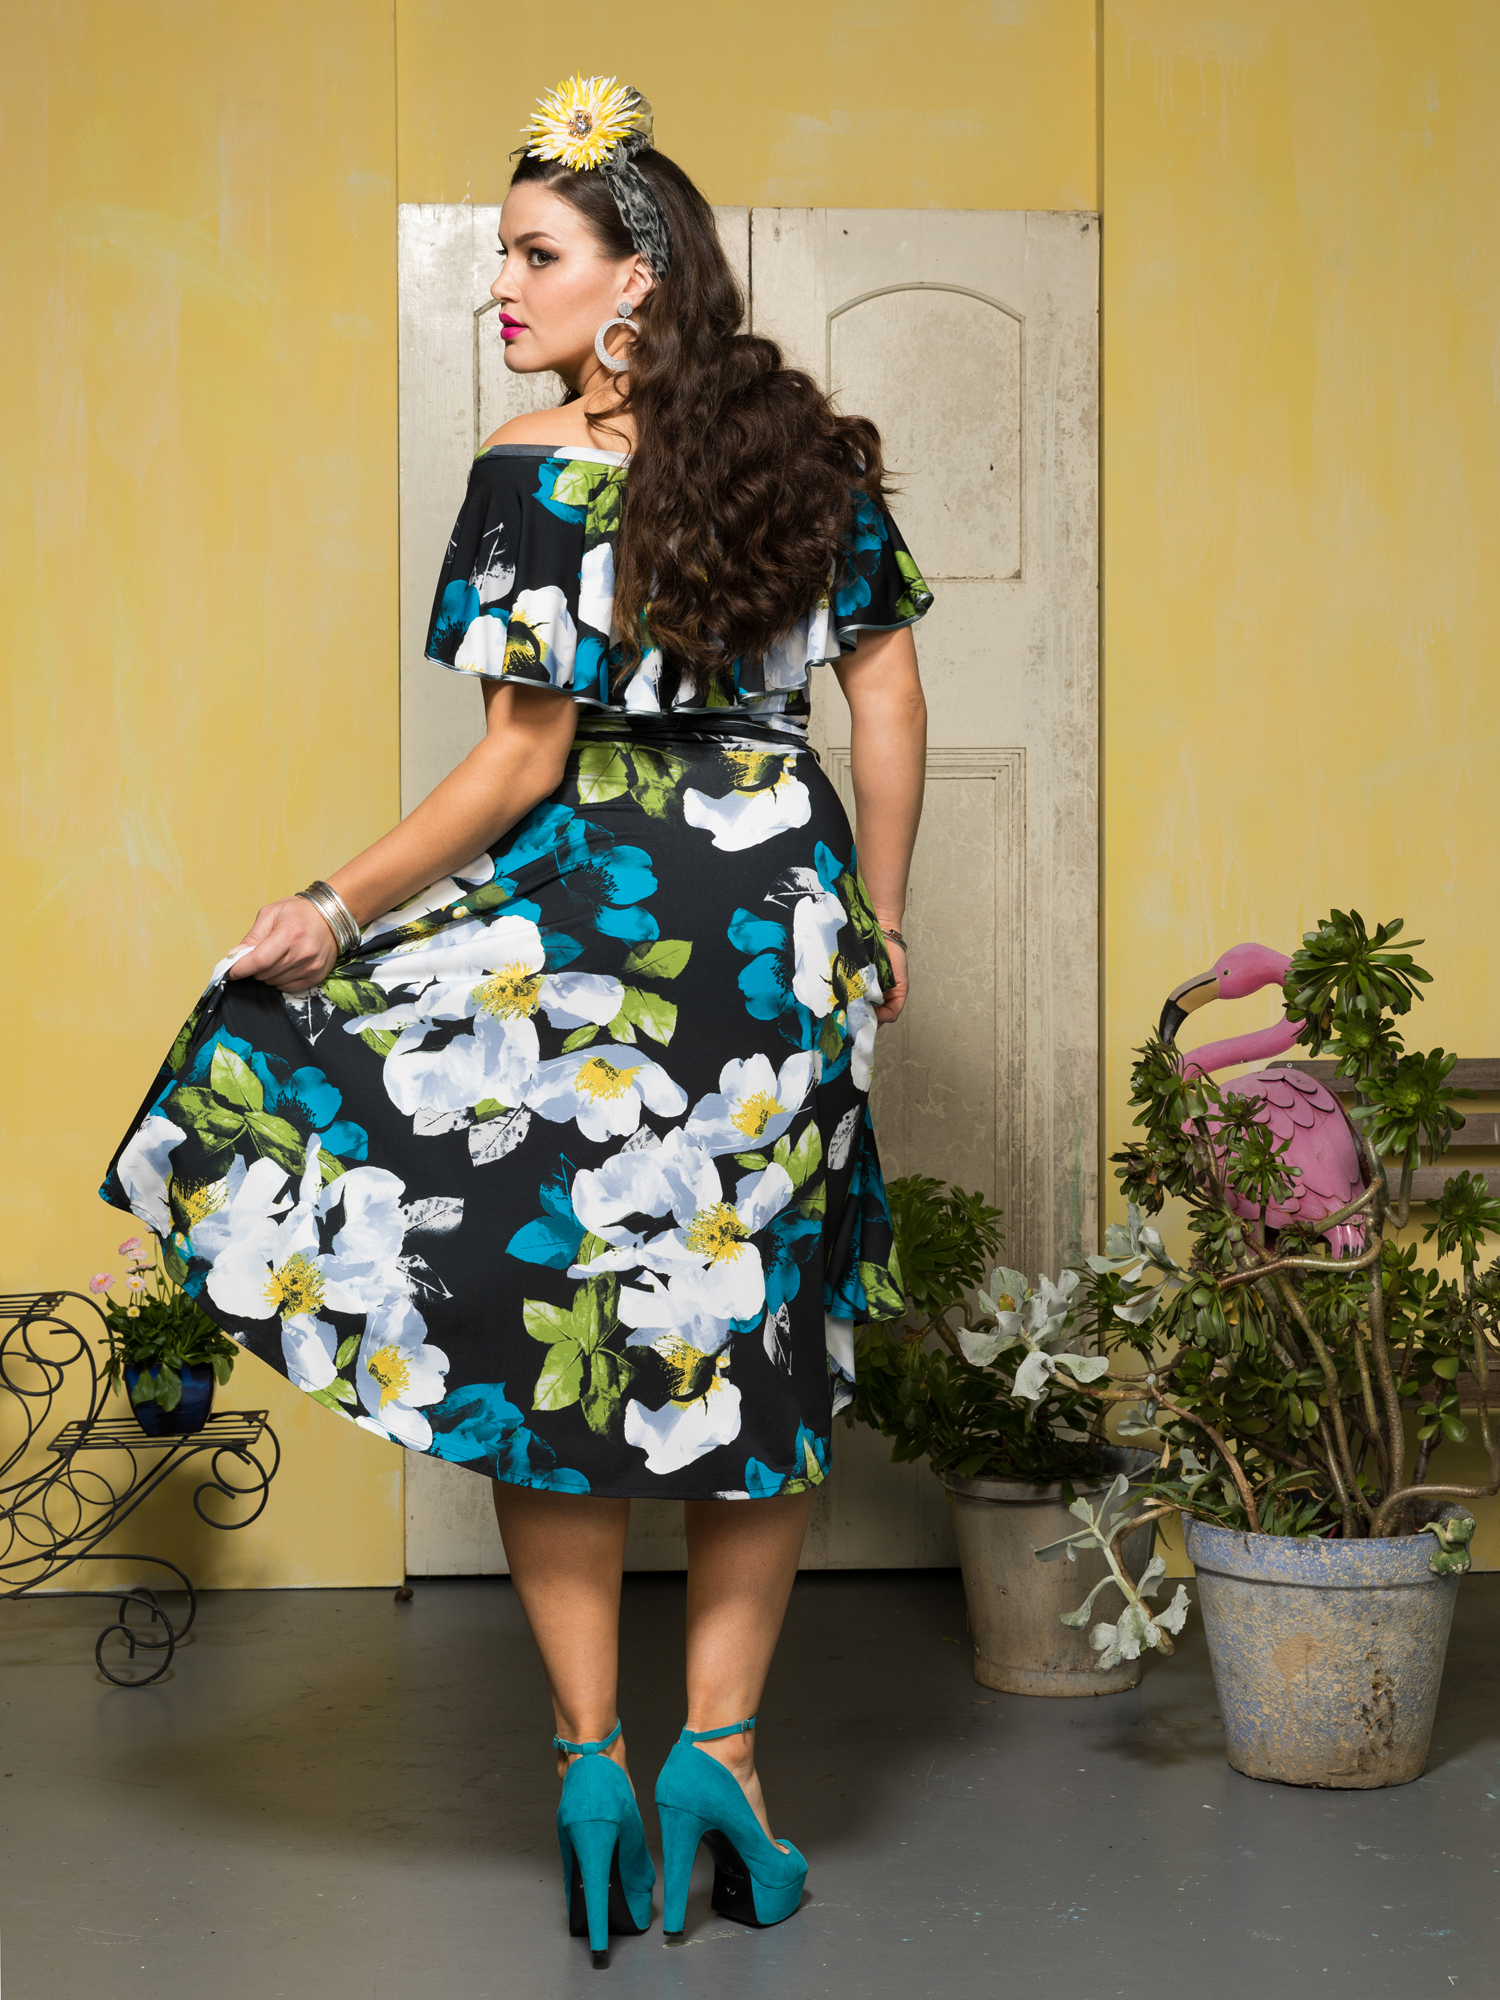 54 RUMBA RUFFLE DRESS.grandiflora bk.1500.2000